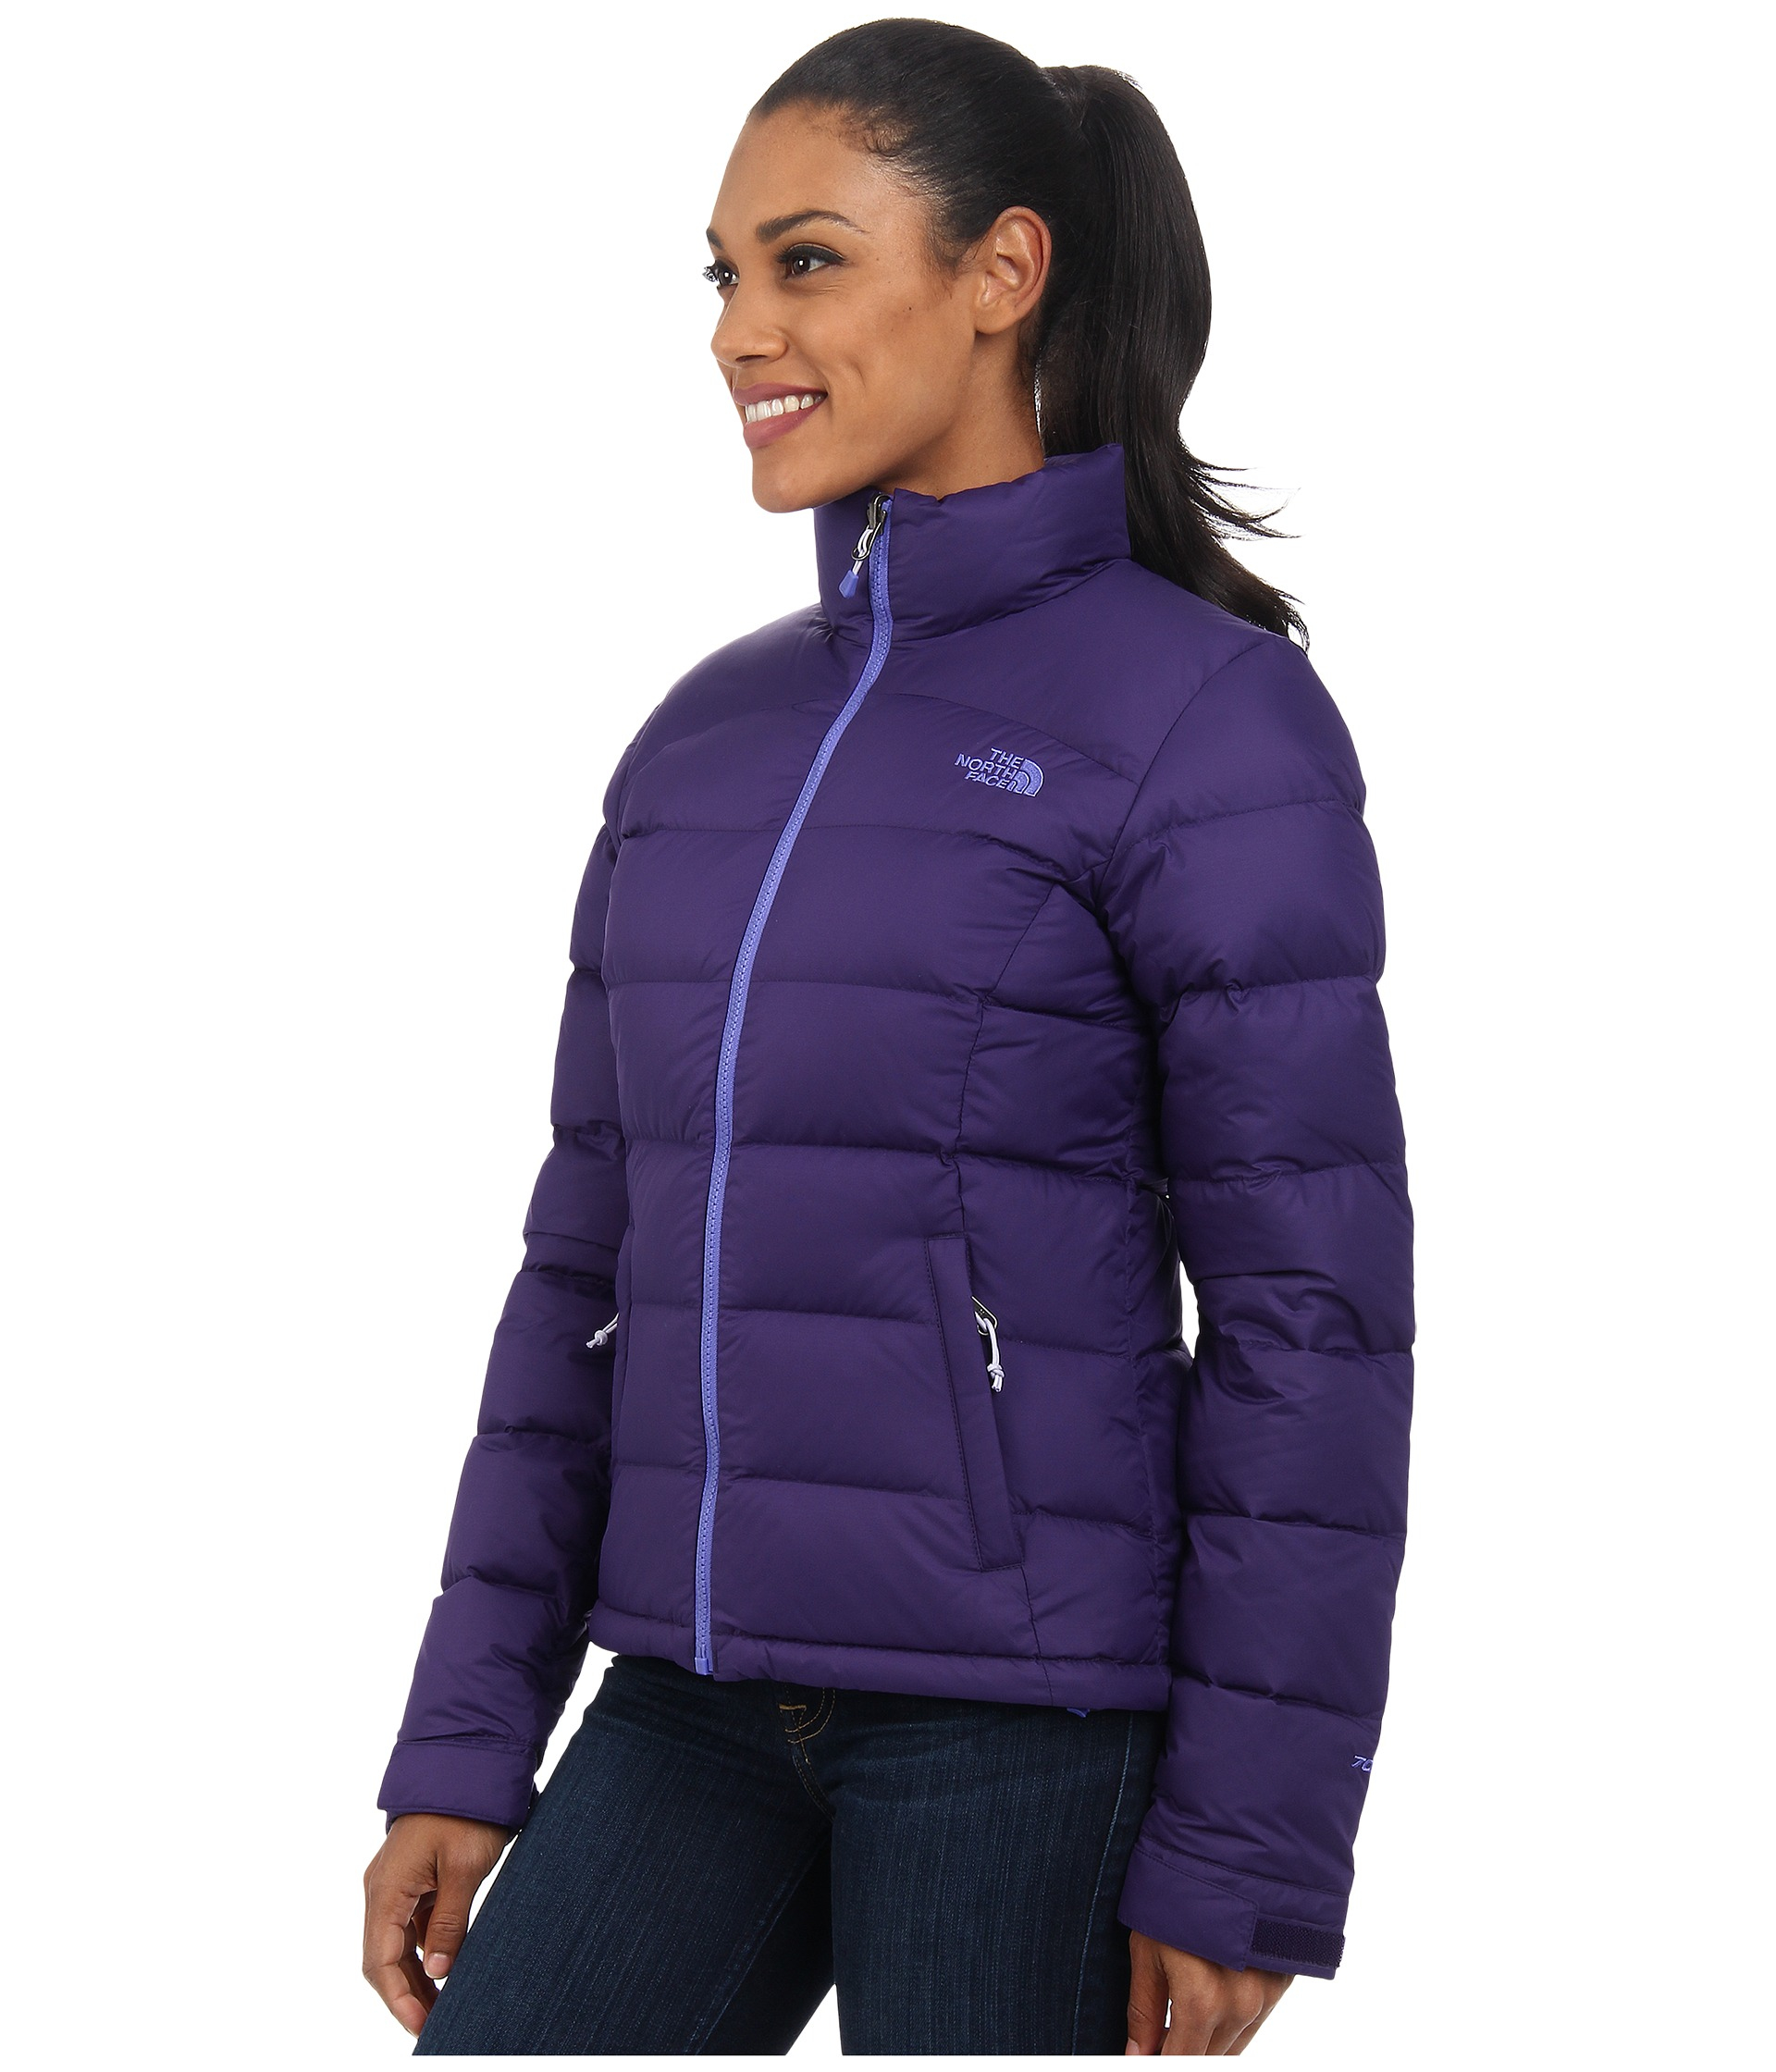 lyst the north face nuptse 2 jacket in purple. Black Bedroom Furniture Sets. Home Design Ideas